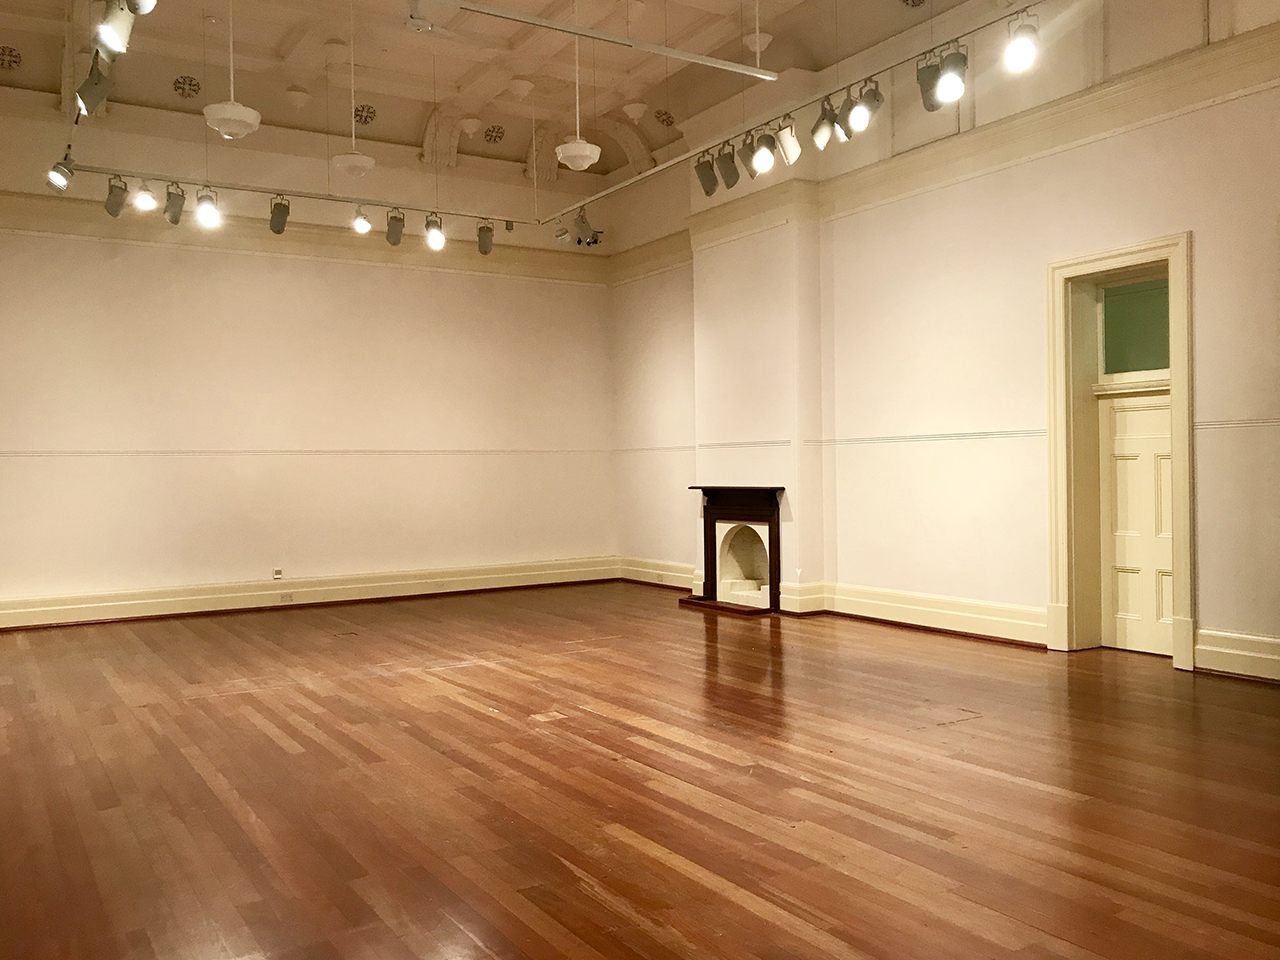 Art gallery venue hire